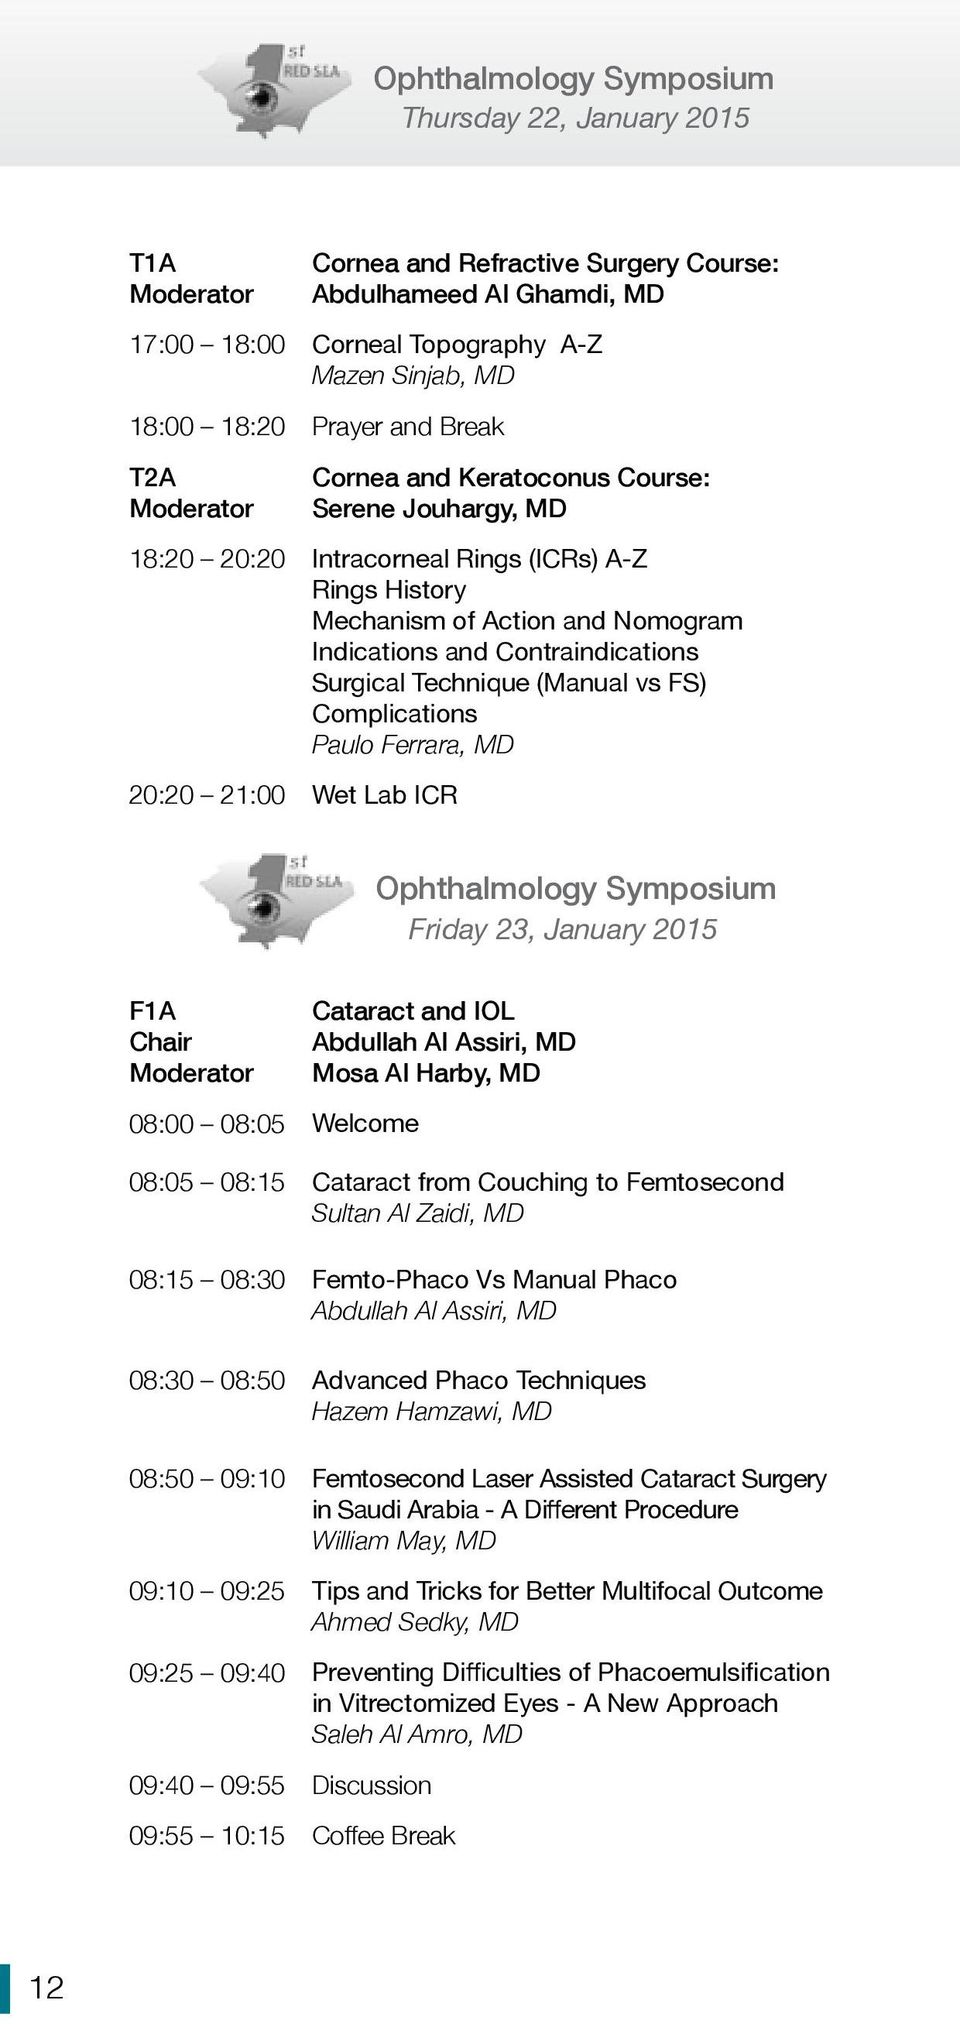 MD 20:20 21:00 Wet Lab ICR Ophthalmology Symposium Friday 23, January 2015 F1A 08:00 08:05 Welcome Cataract and IOL Abdullah Al Assiri, MD Mosa Al Harby, MD 08:05 08:15 Cataract from Couching to